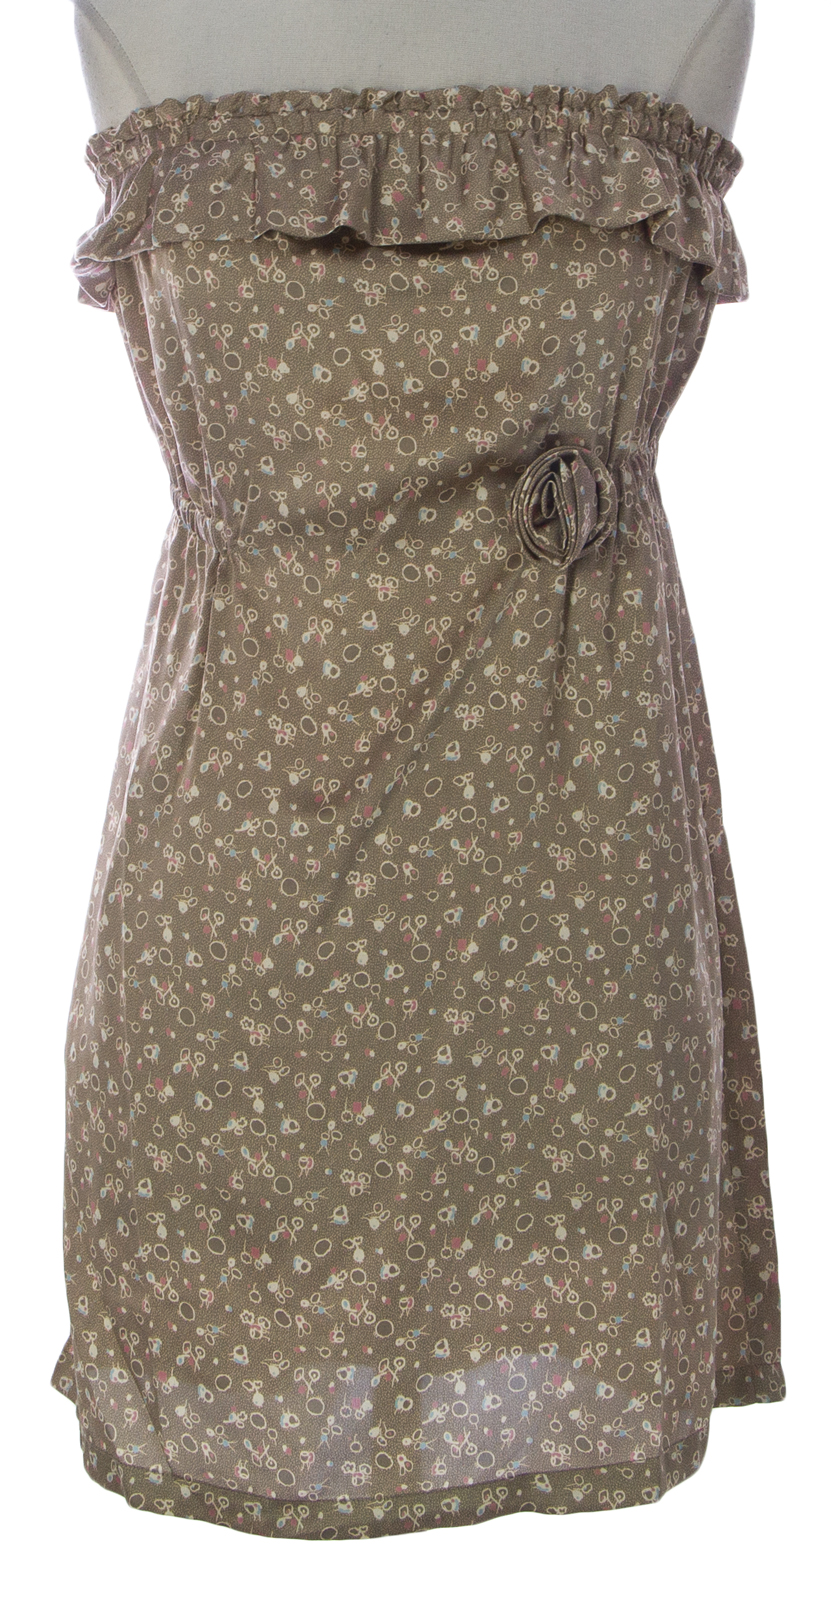 PRIORITIES Women/'s Beige Strapless Floral Print Dress #41651 $127 NEW